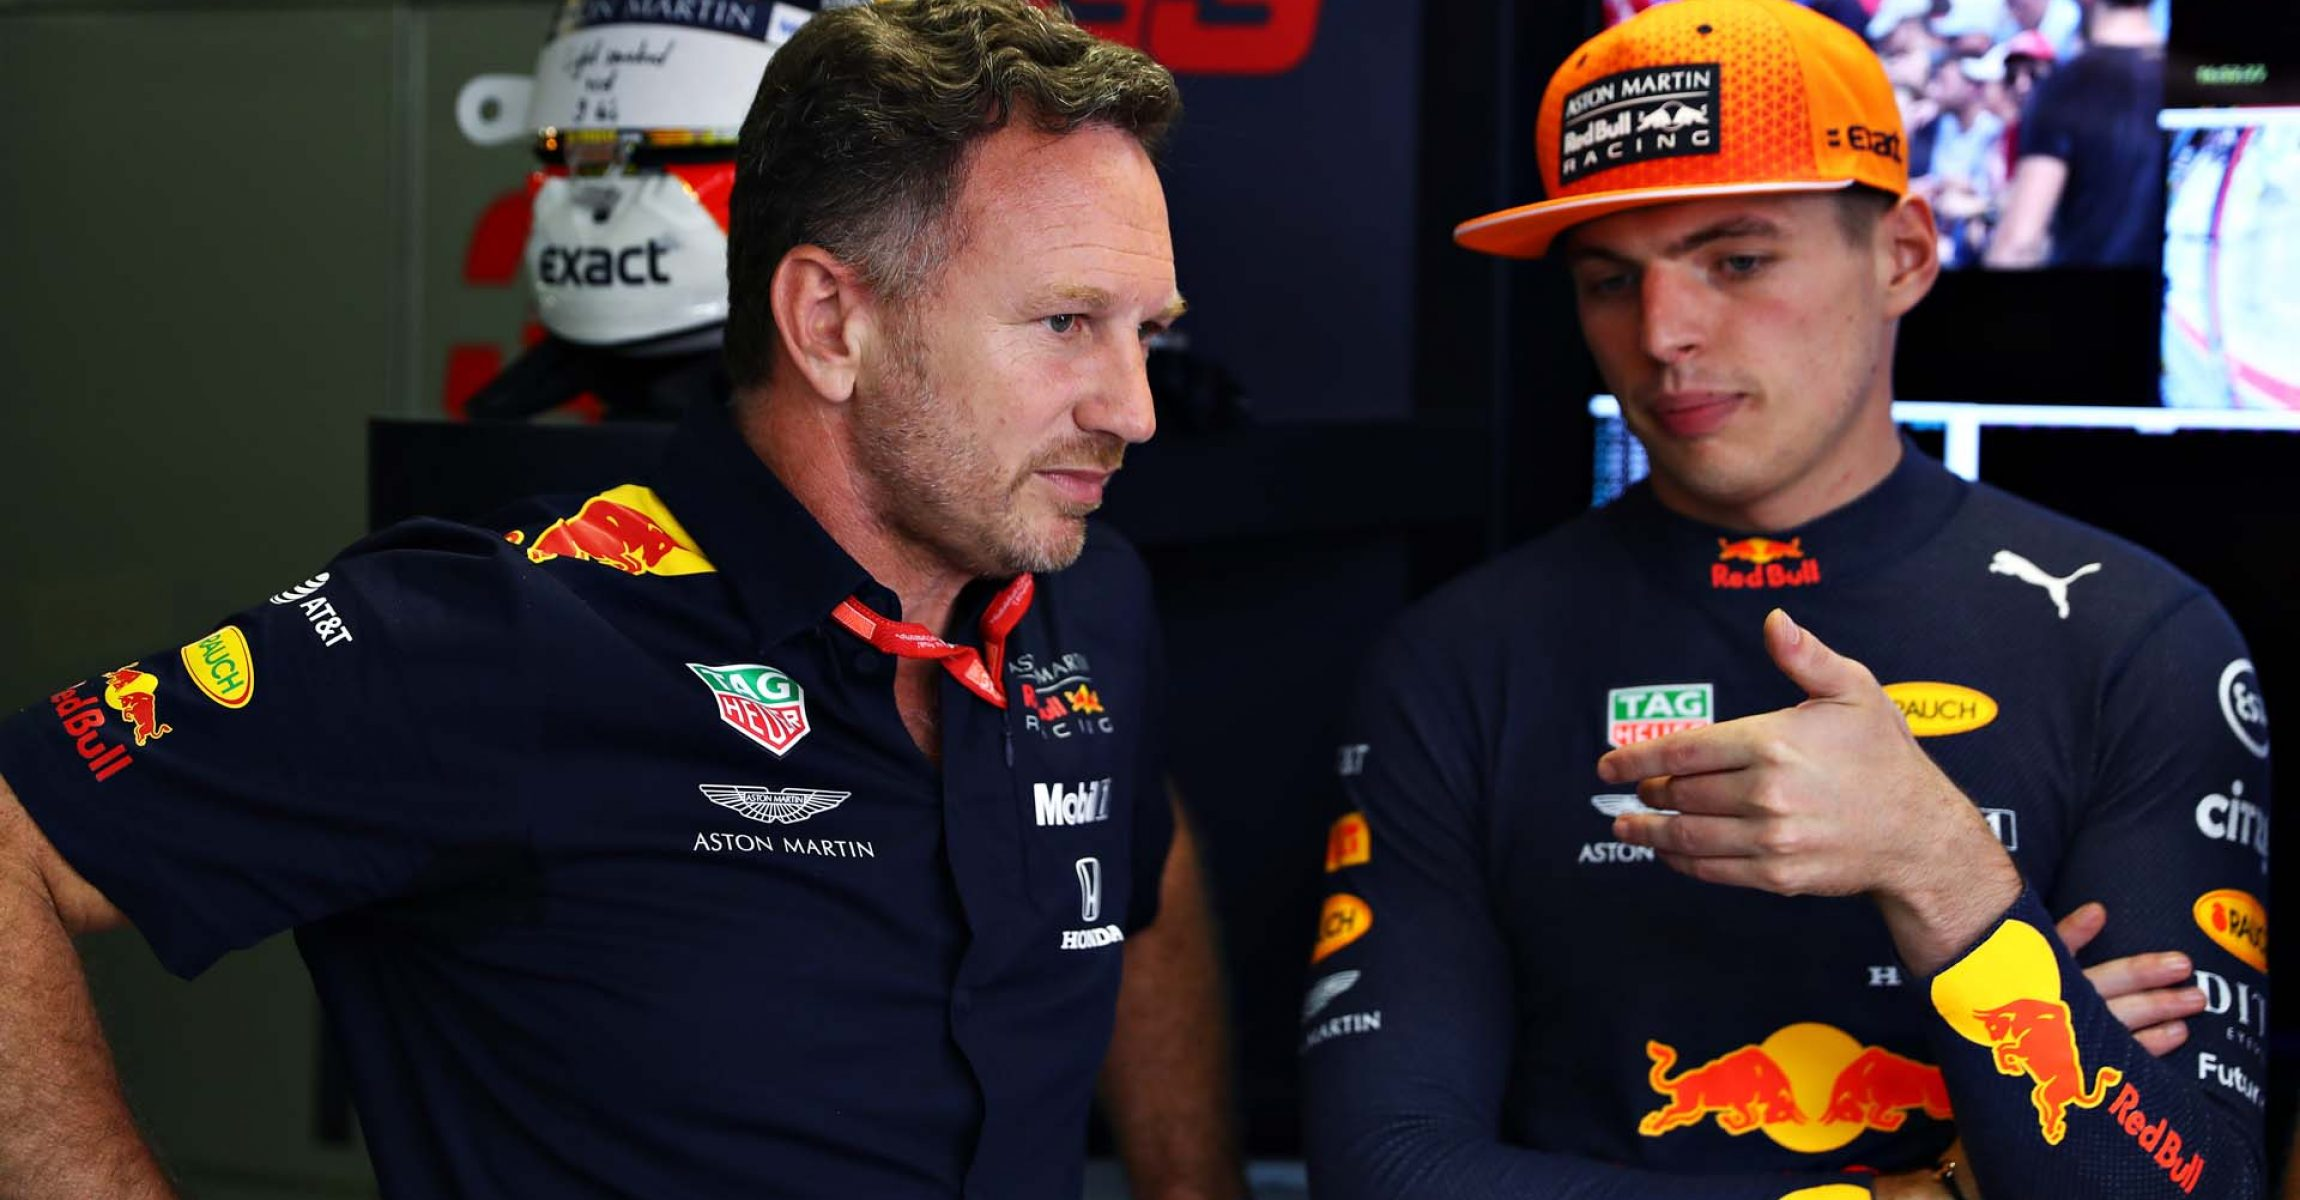 MONZA, ITALY - SEPTEMBER 07: Red Bull Racing Team Principal Christian Horner talks with Max Verstappen of Netherlands and Red Bull Racing in the garage during qualifying for the F1 Grand Prix of Italy at Autodromo di Monza on September 07, 2019 in Monza, Italy. (Photo by Mark Thompson/Getty Images) // Getty Images / Red Bull Content Pool // AP-21GFMBVDD1W11 // Usage for editorial use only //